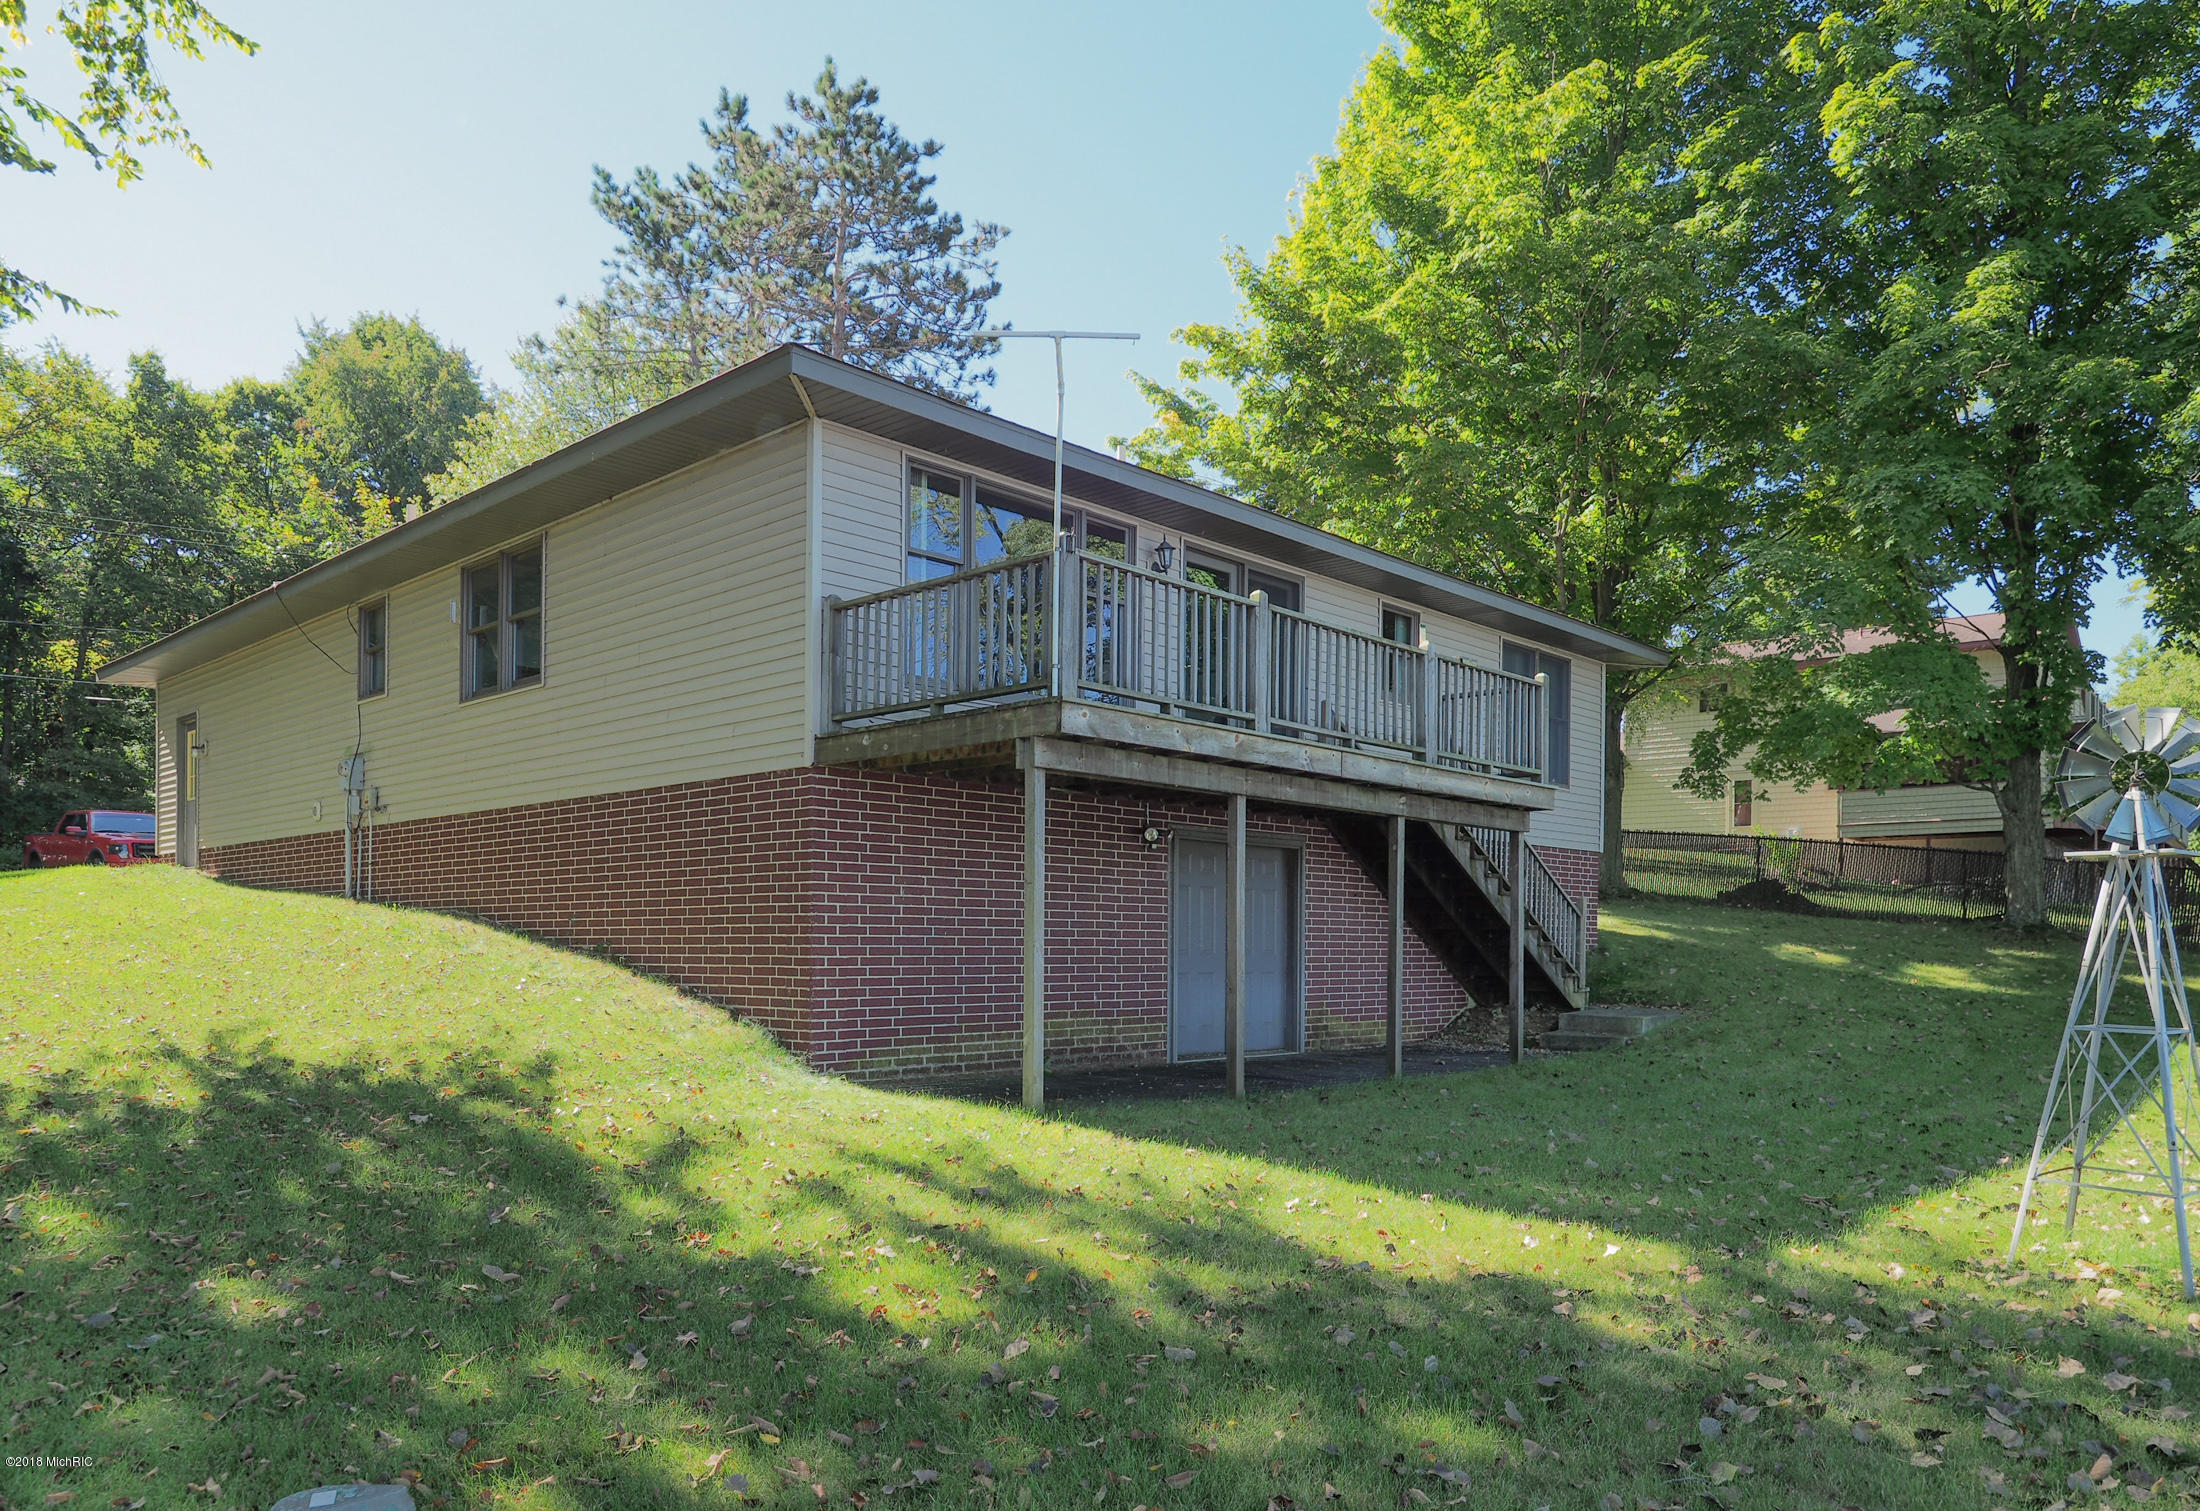 1137 Tolly Park, Union City, MI 49094